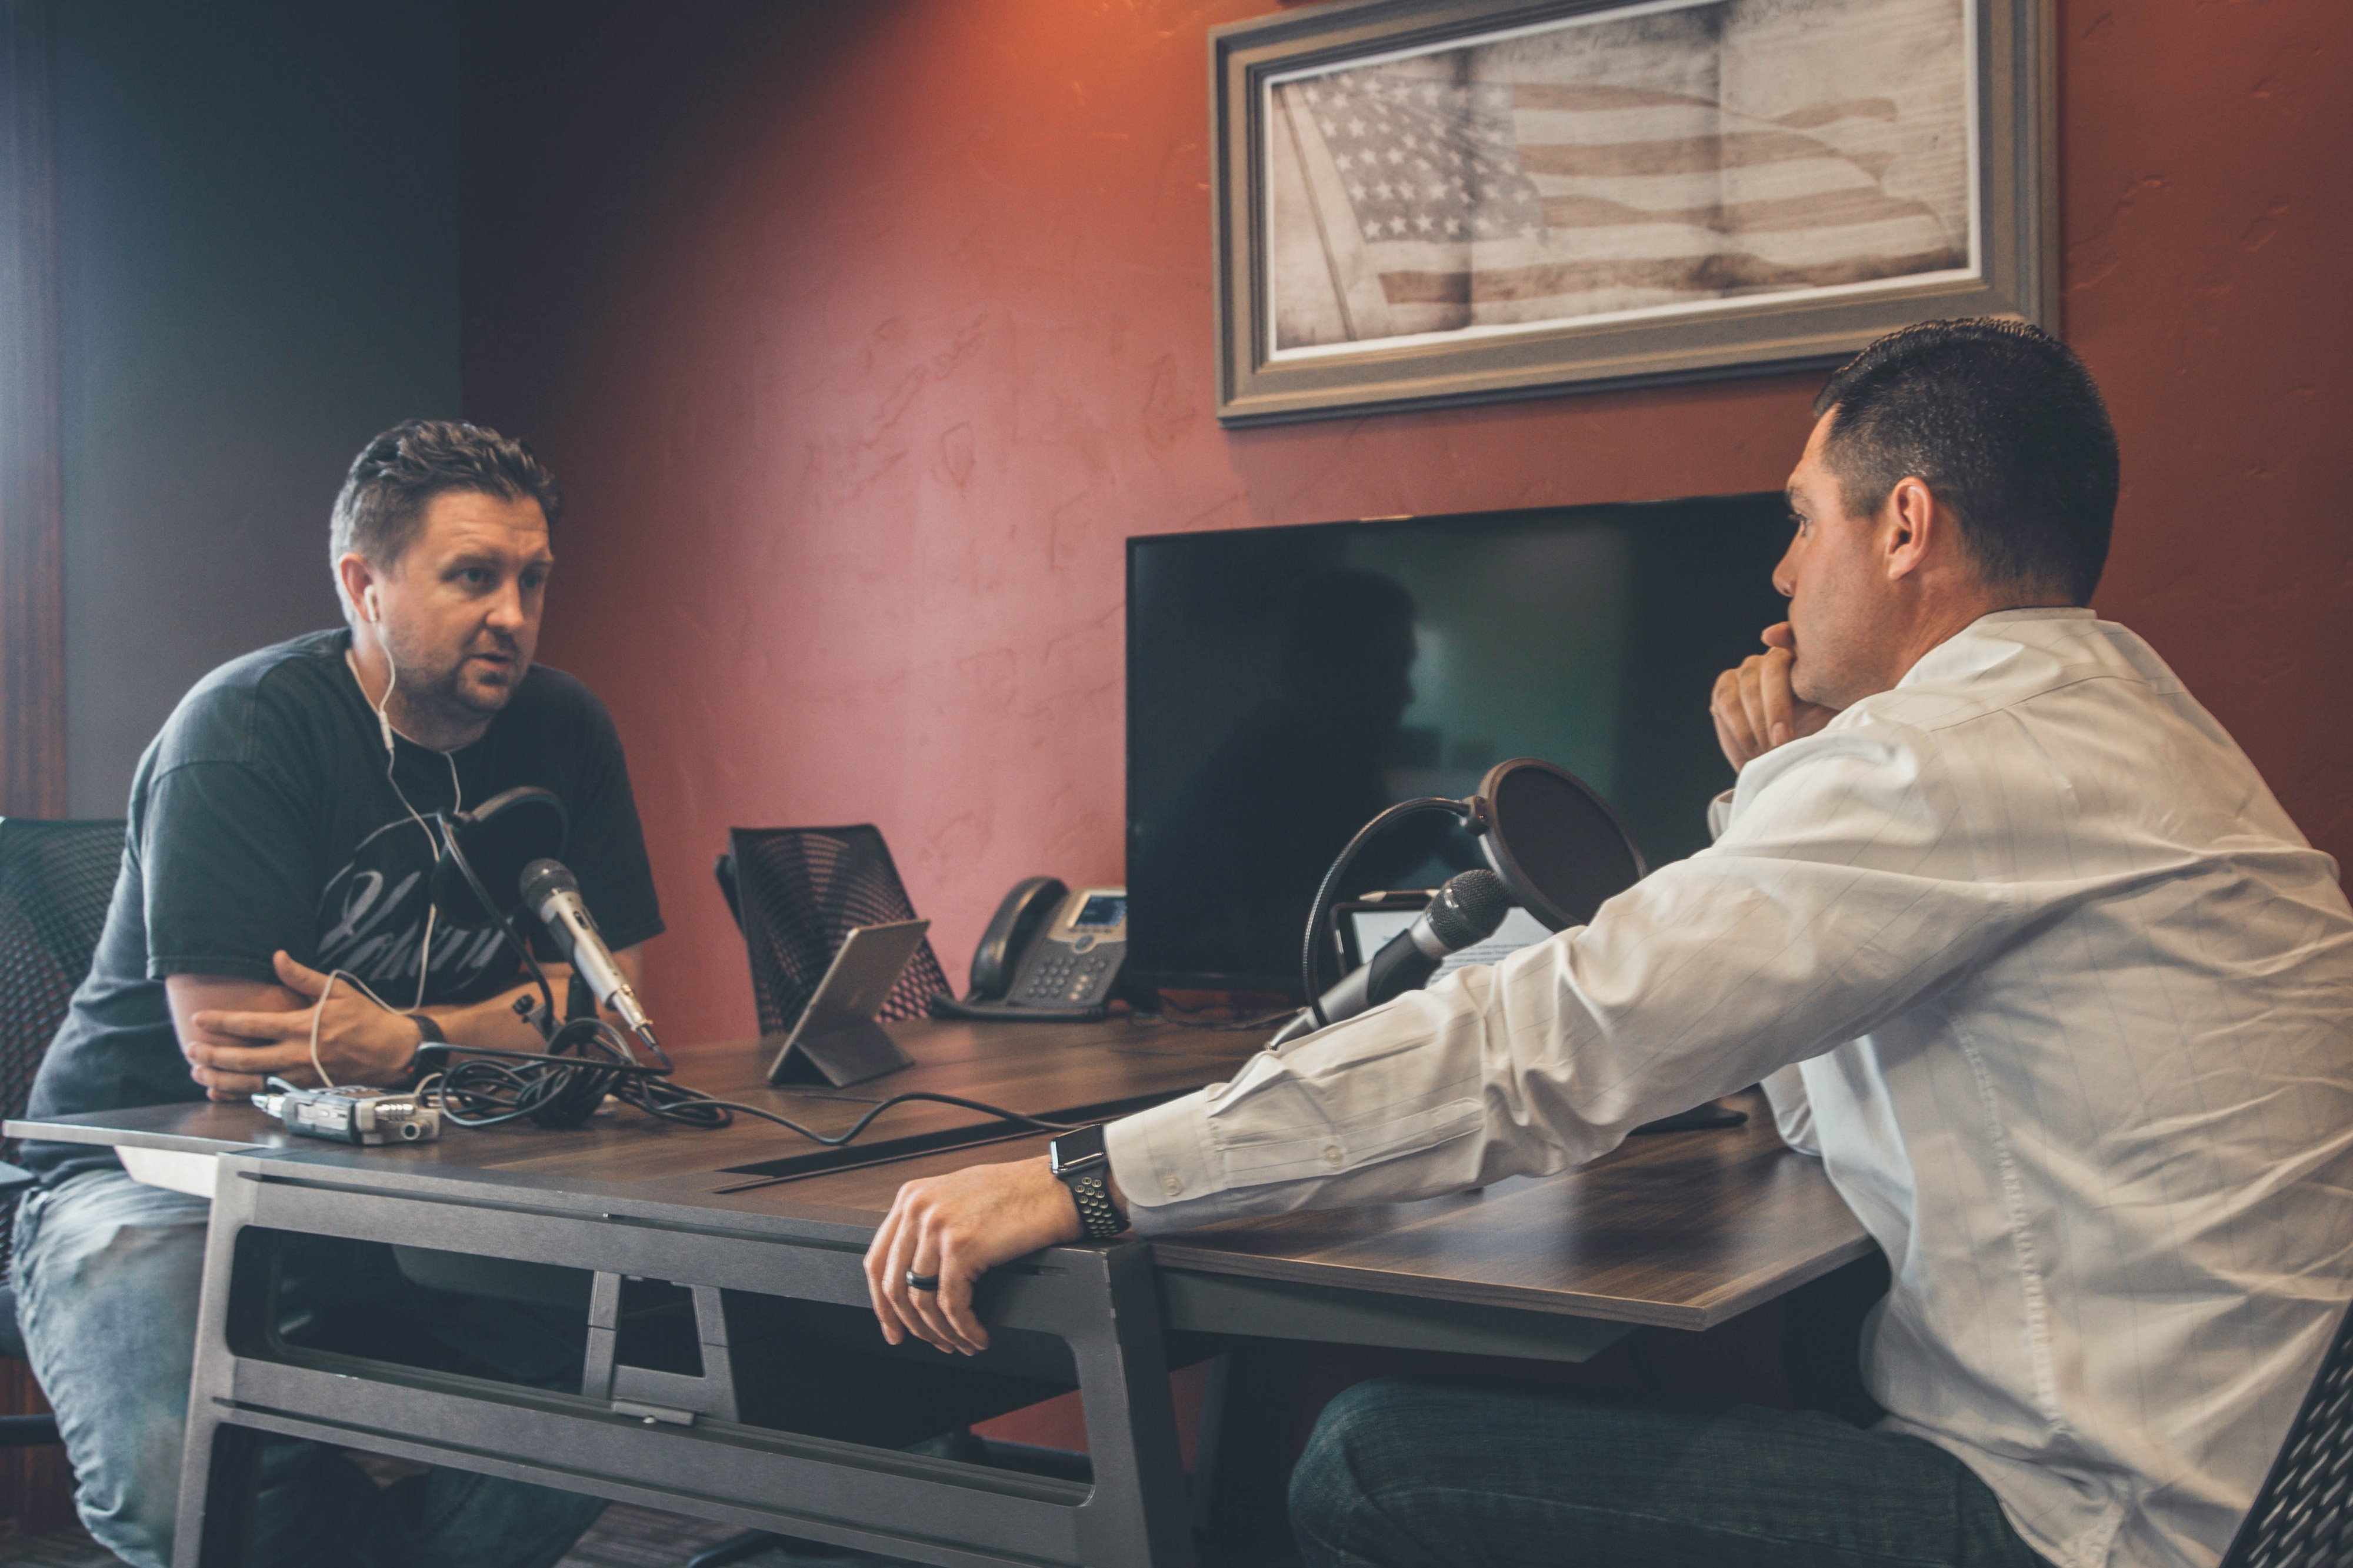 Two men at a table with miicrophones and headphones.